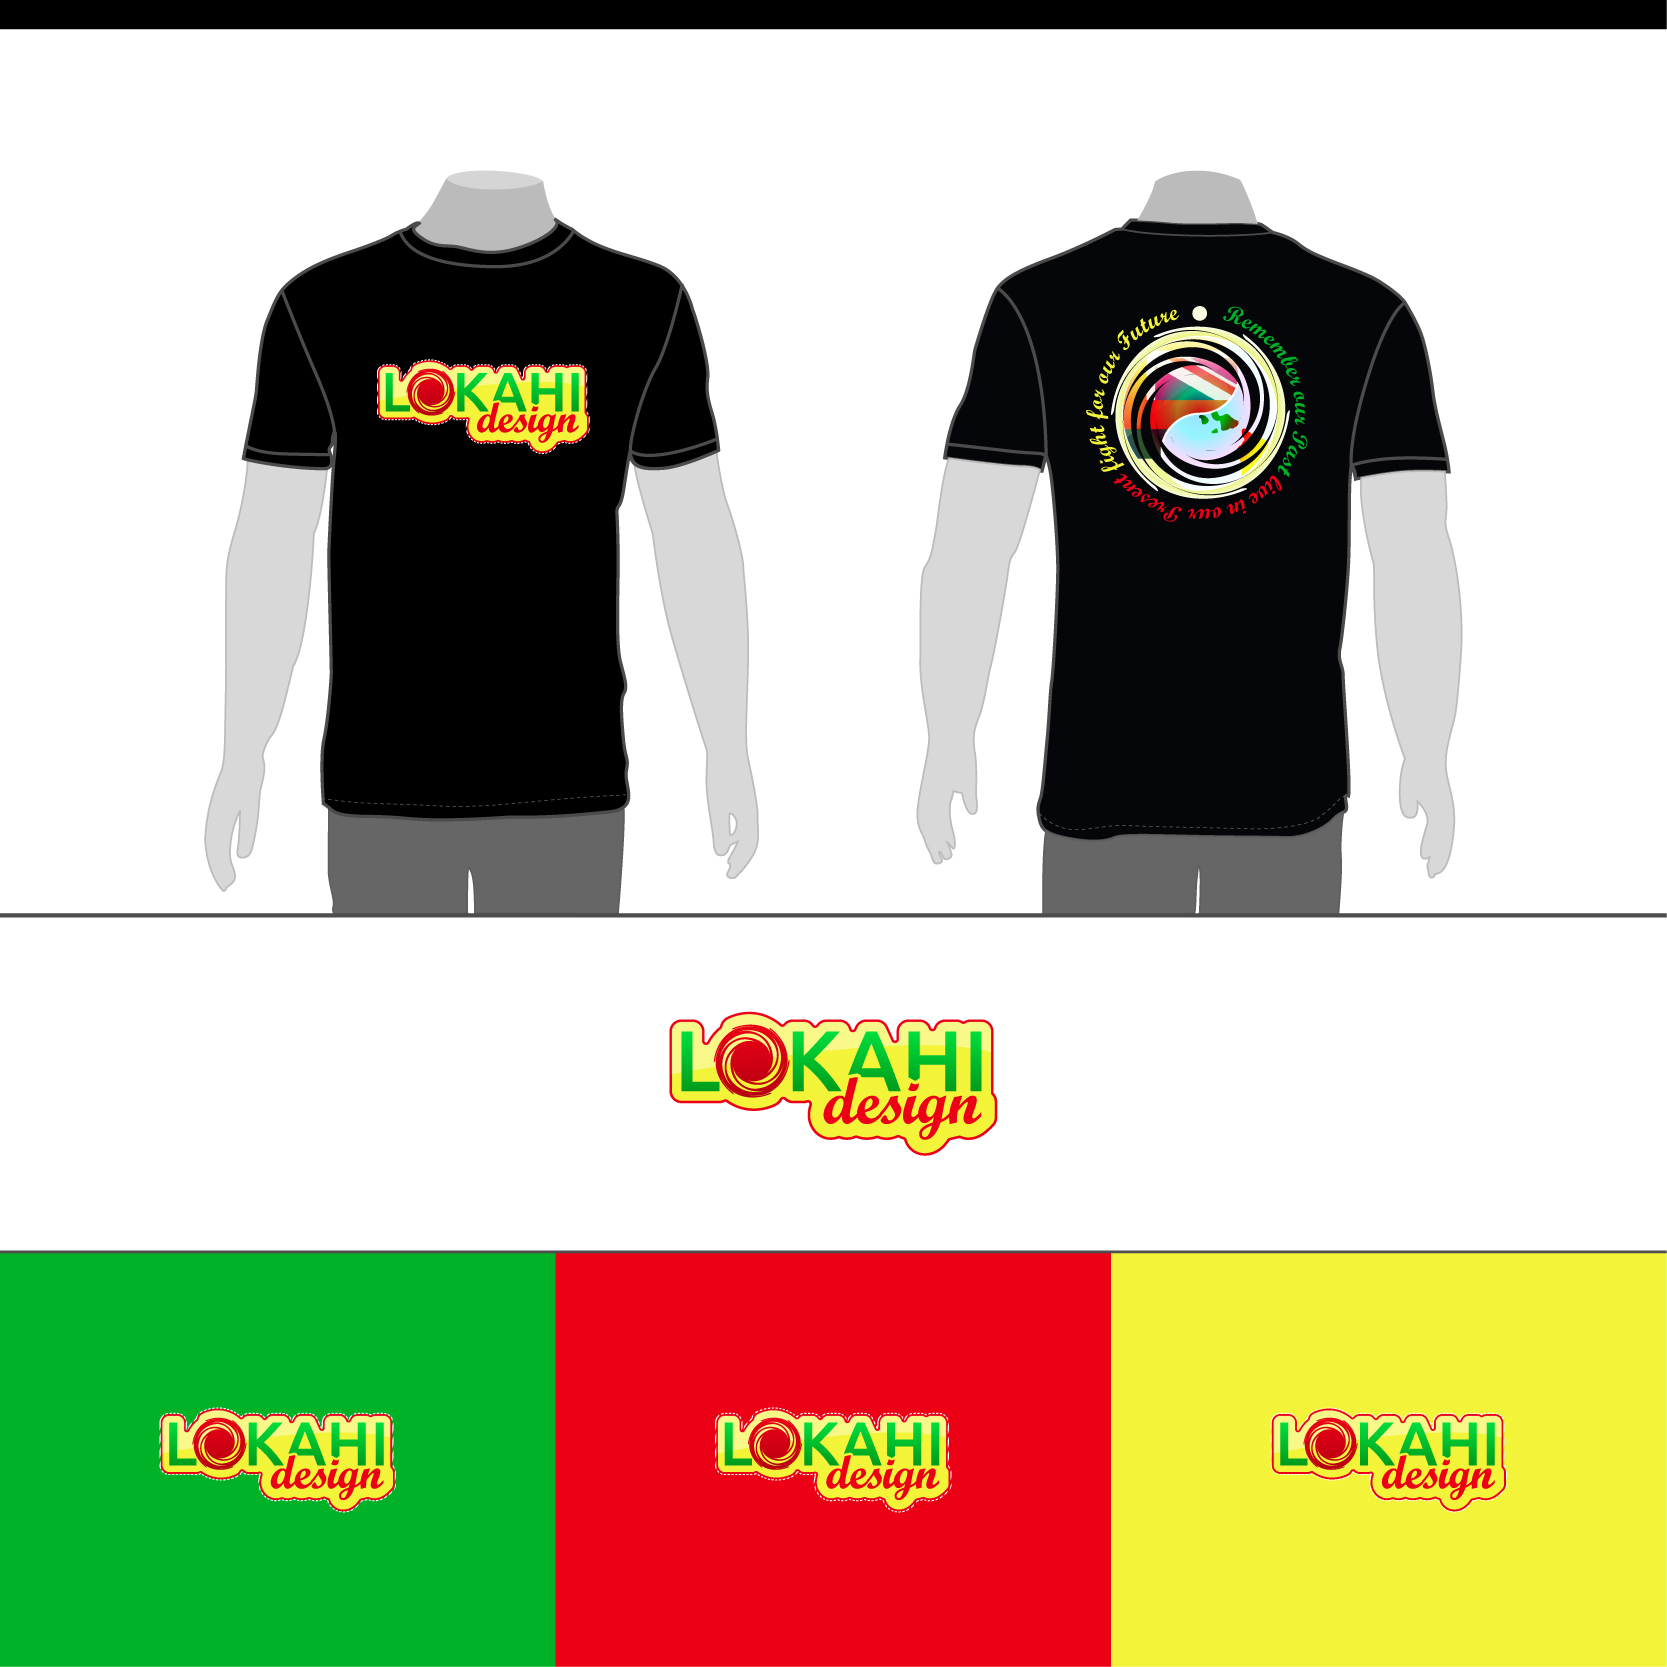 Clothing Design by Alpar David - Entry No. 92 in the Clothing Design Contest Creative Clothing Design for LOKAHI designs.